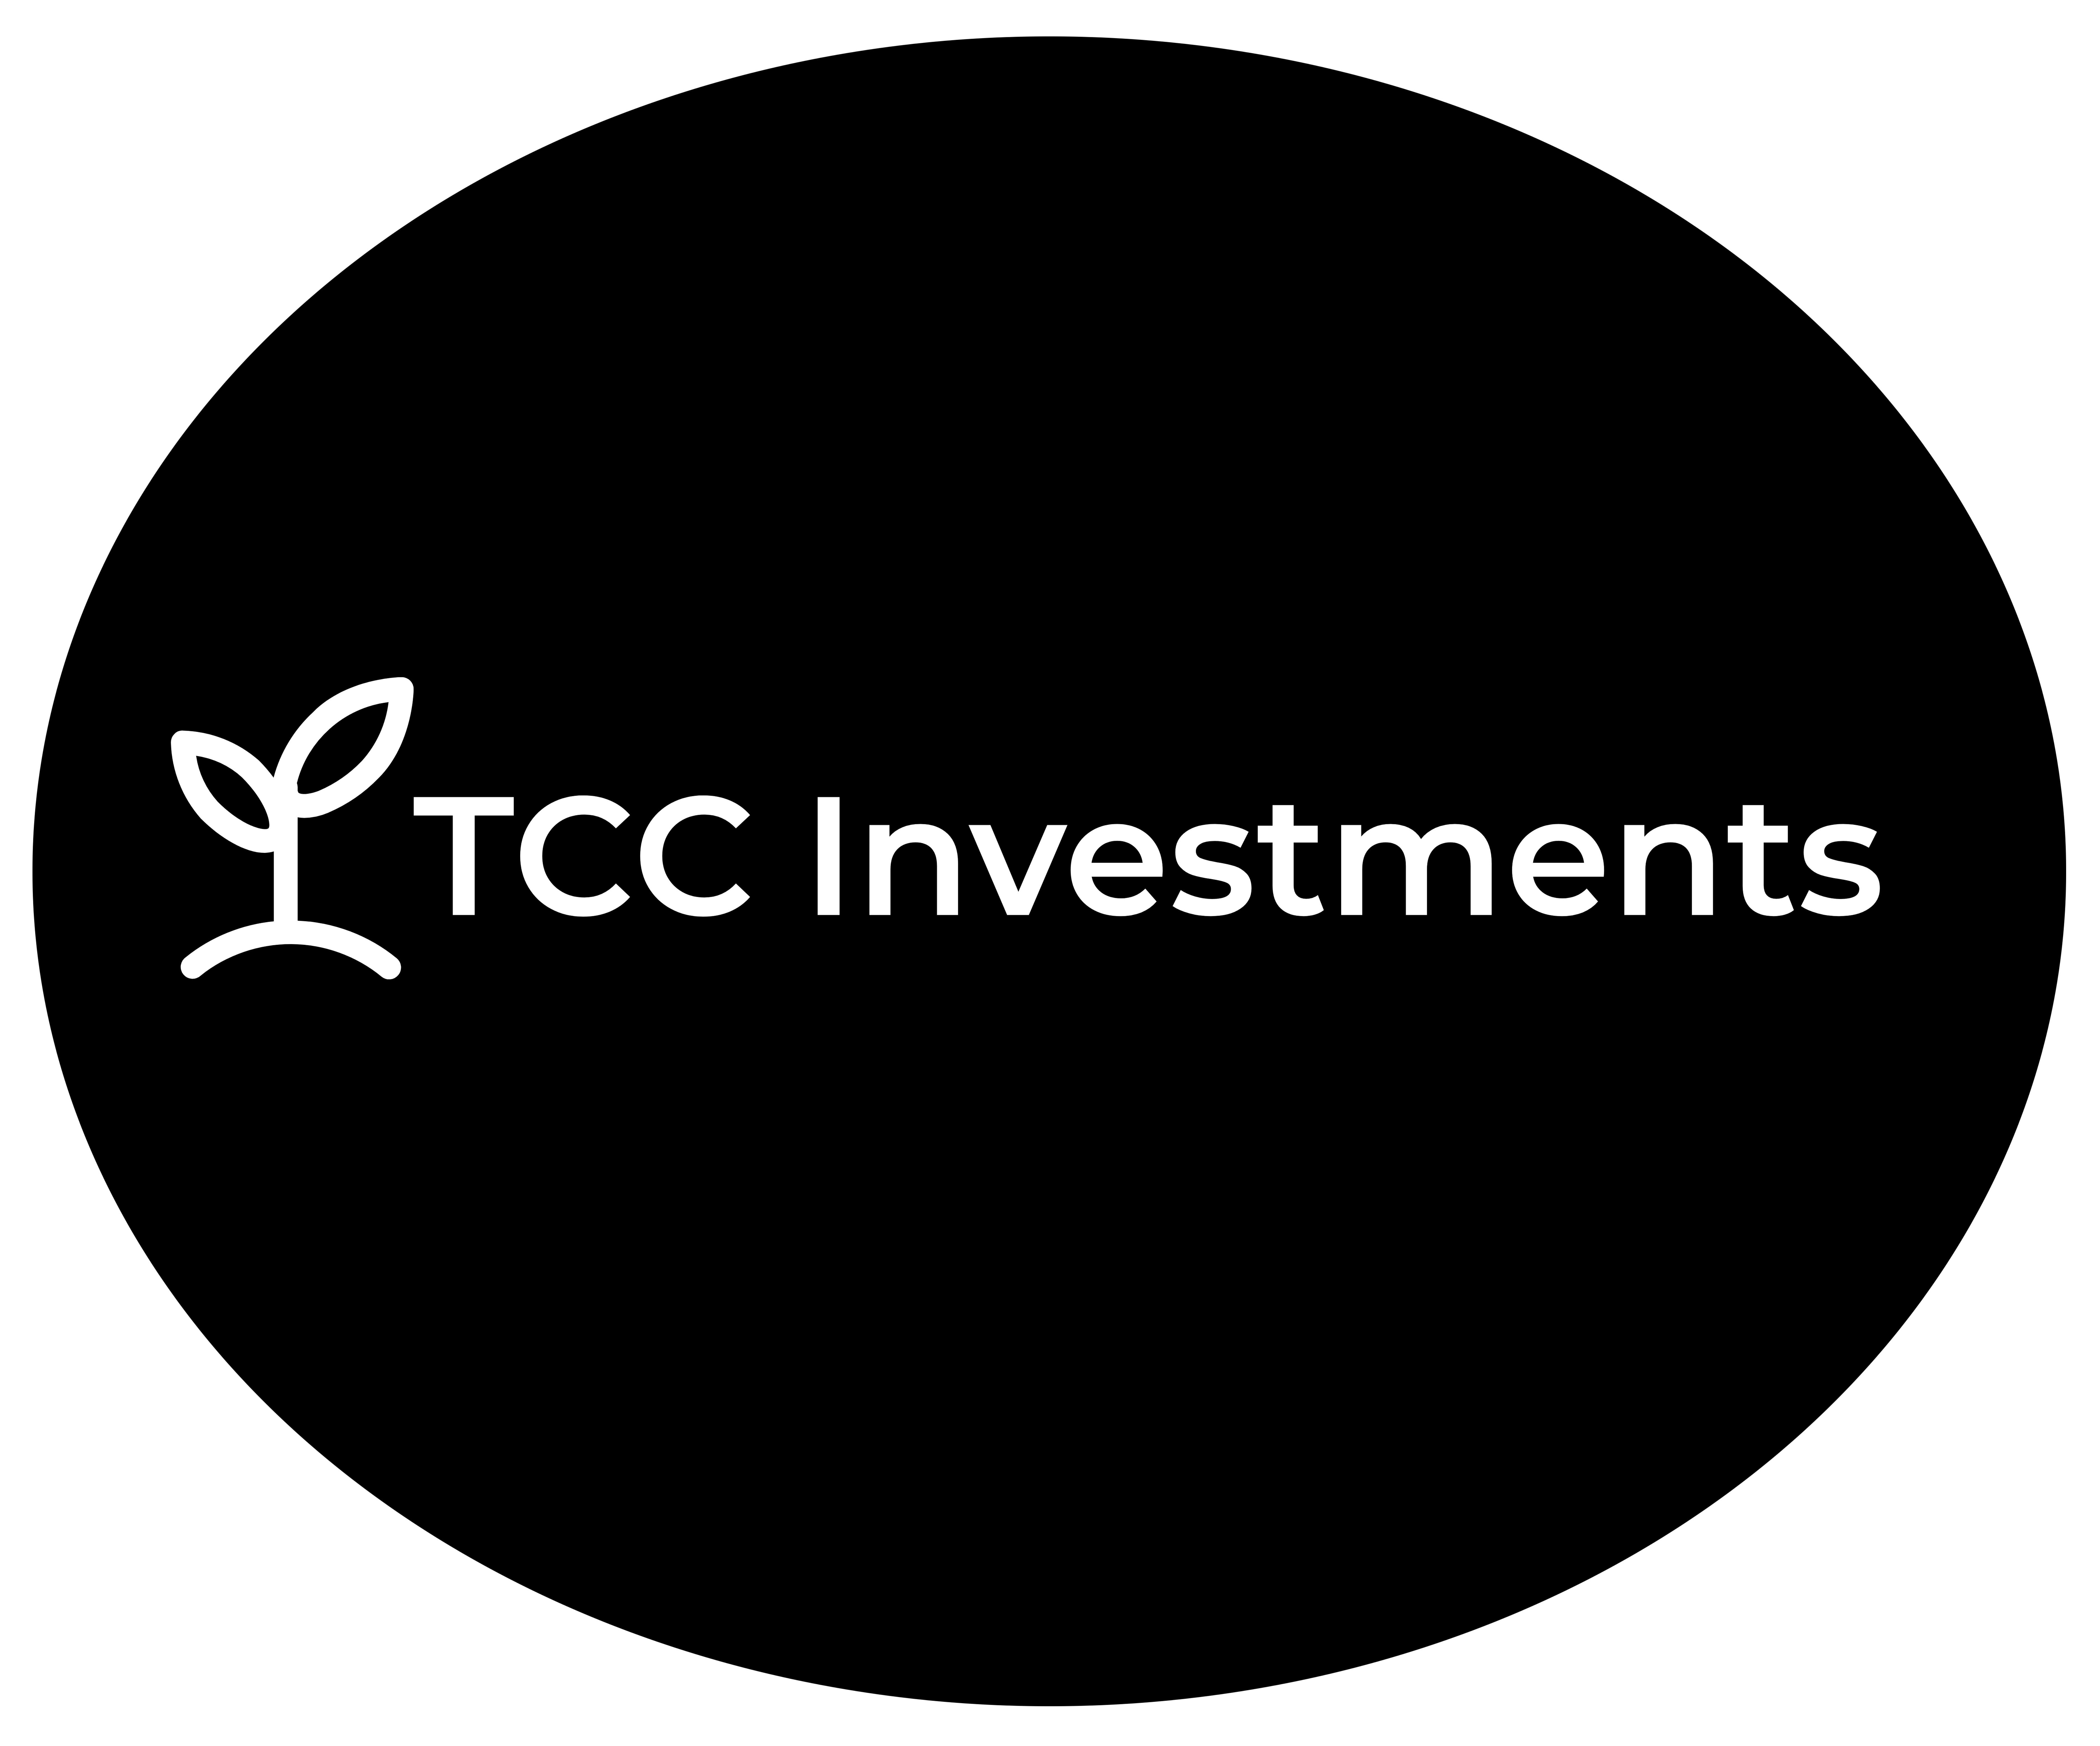 TCC Investments Block Impulse